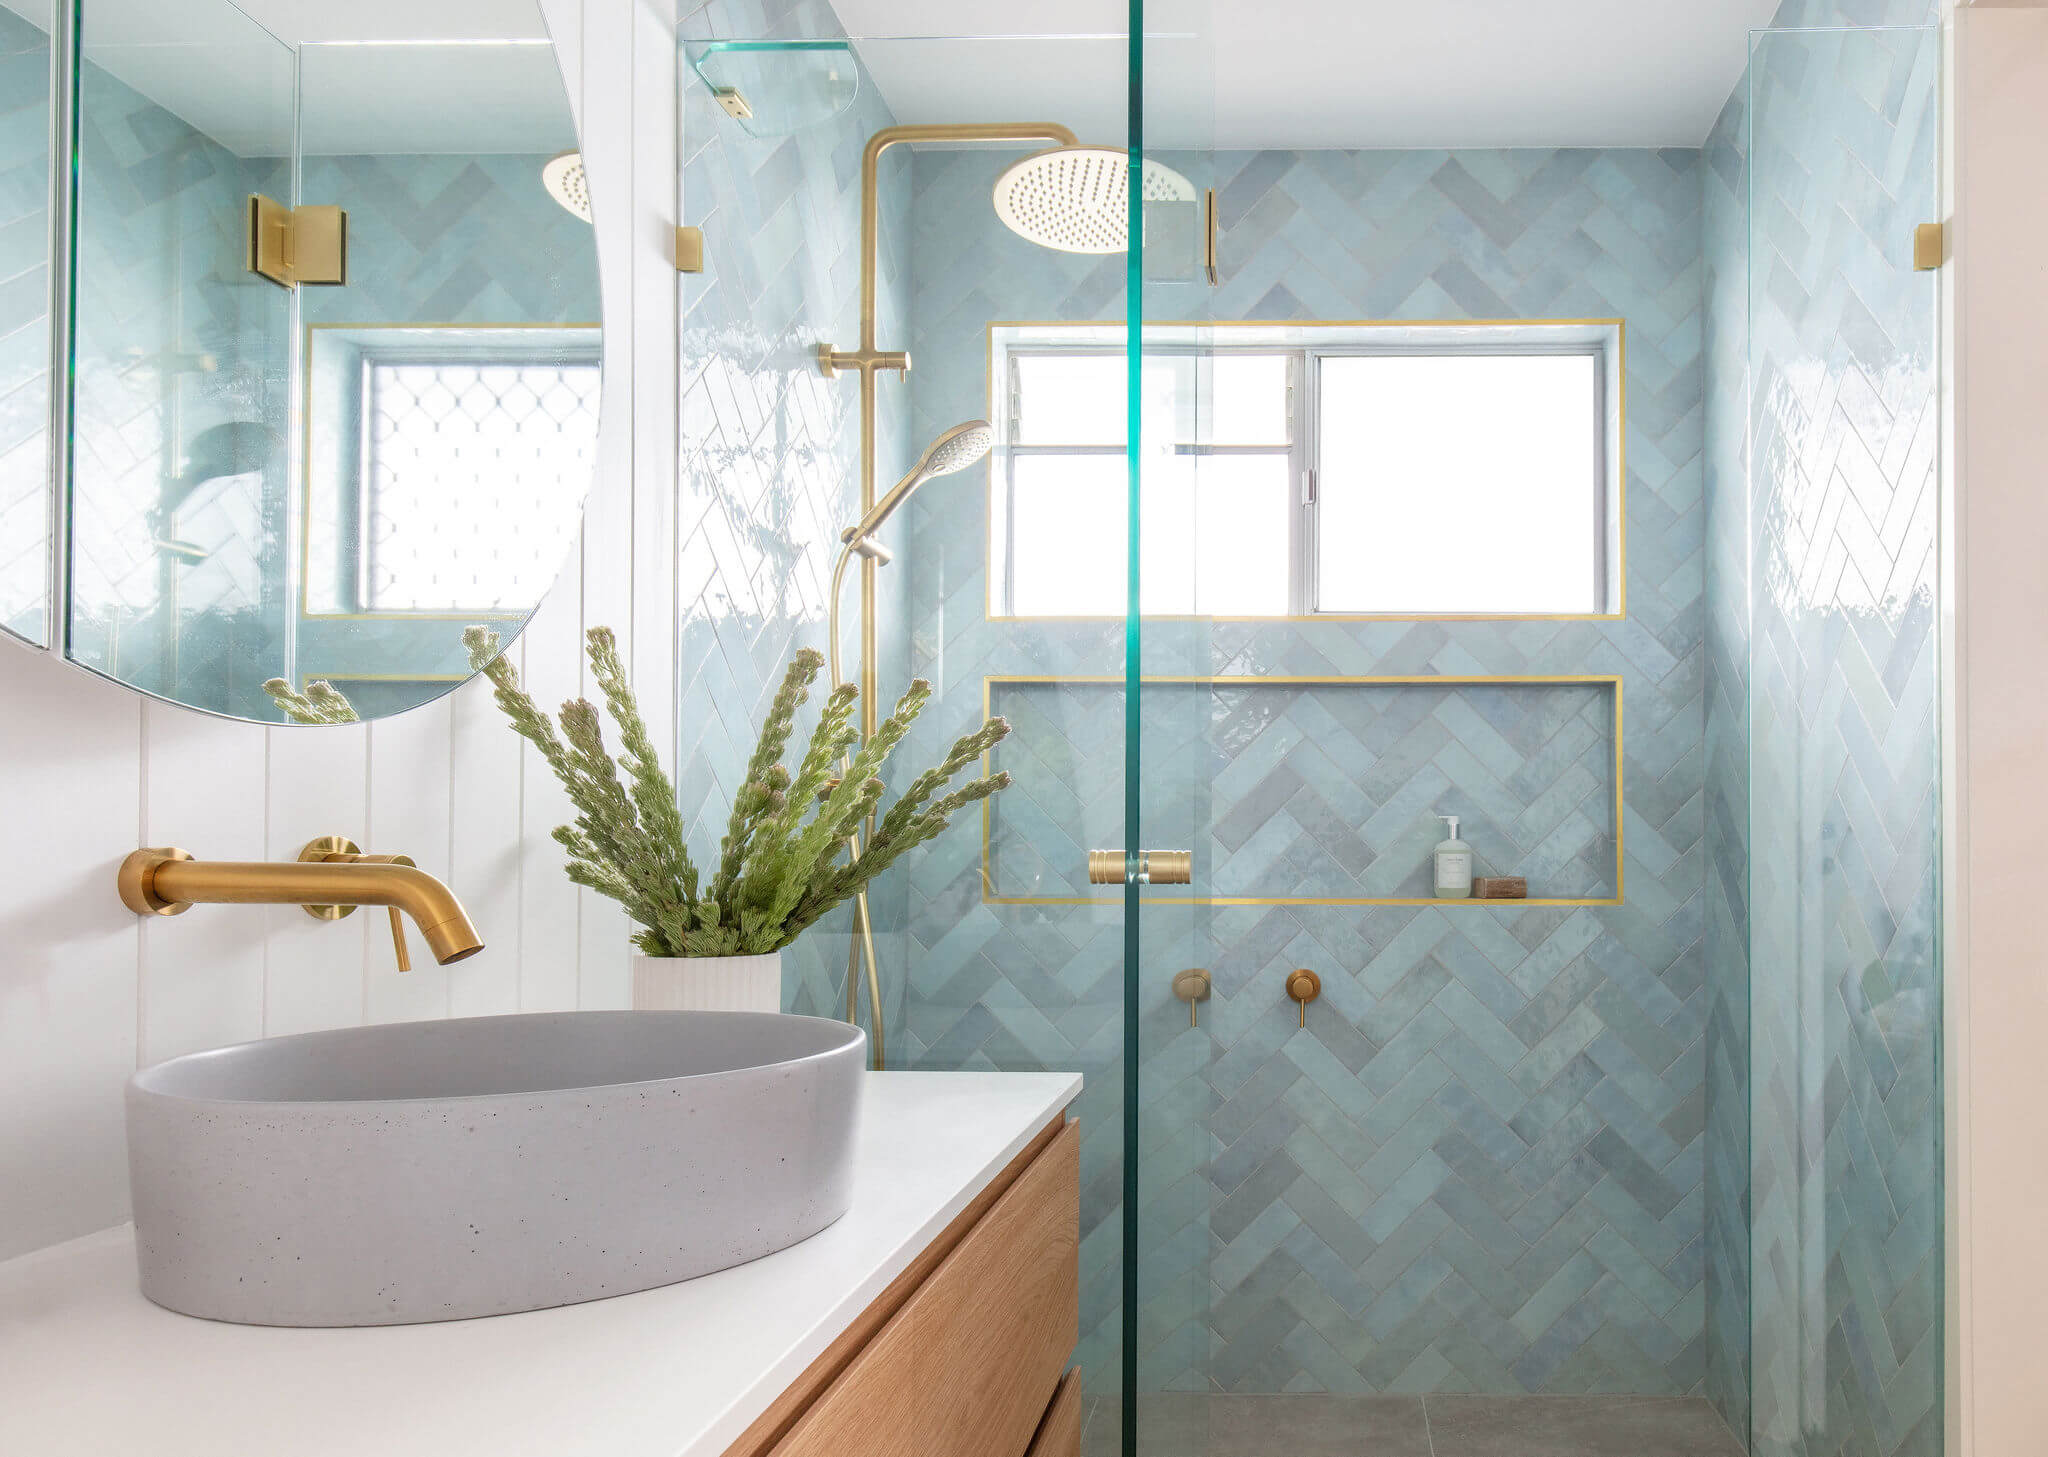 Remarkable Features And Benefits Of Bathroom Renovations In Balgownie